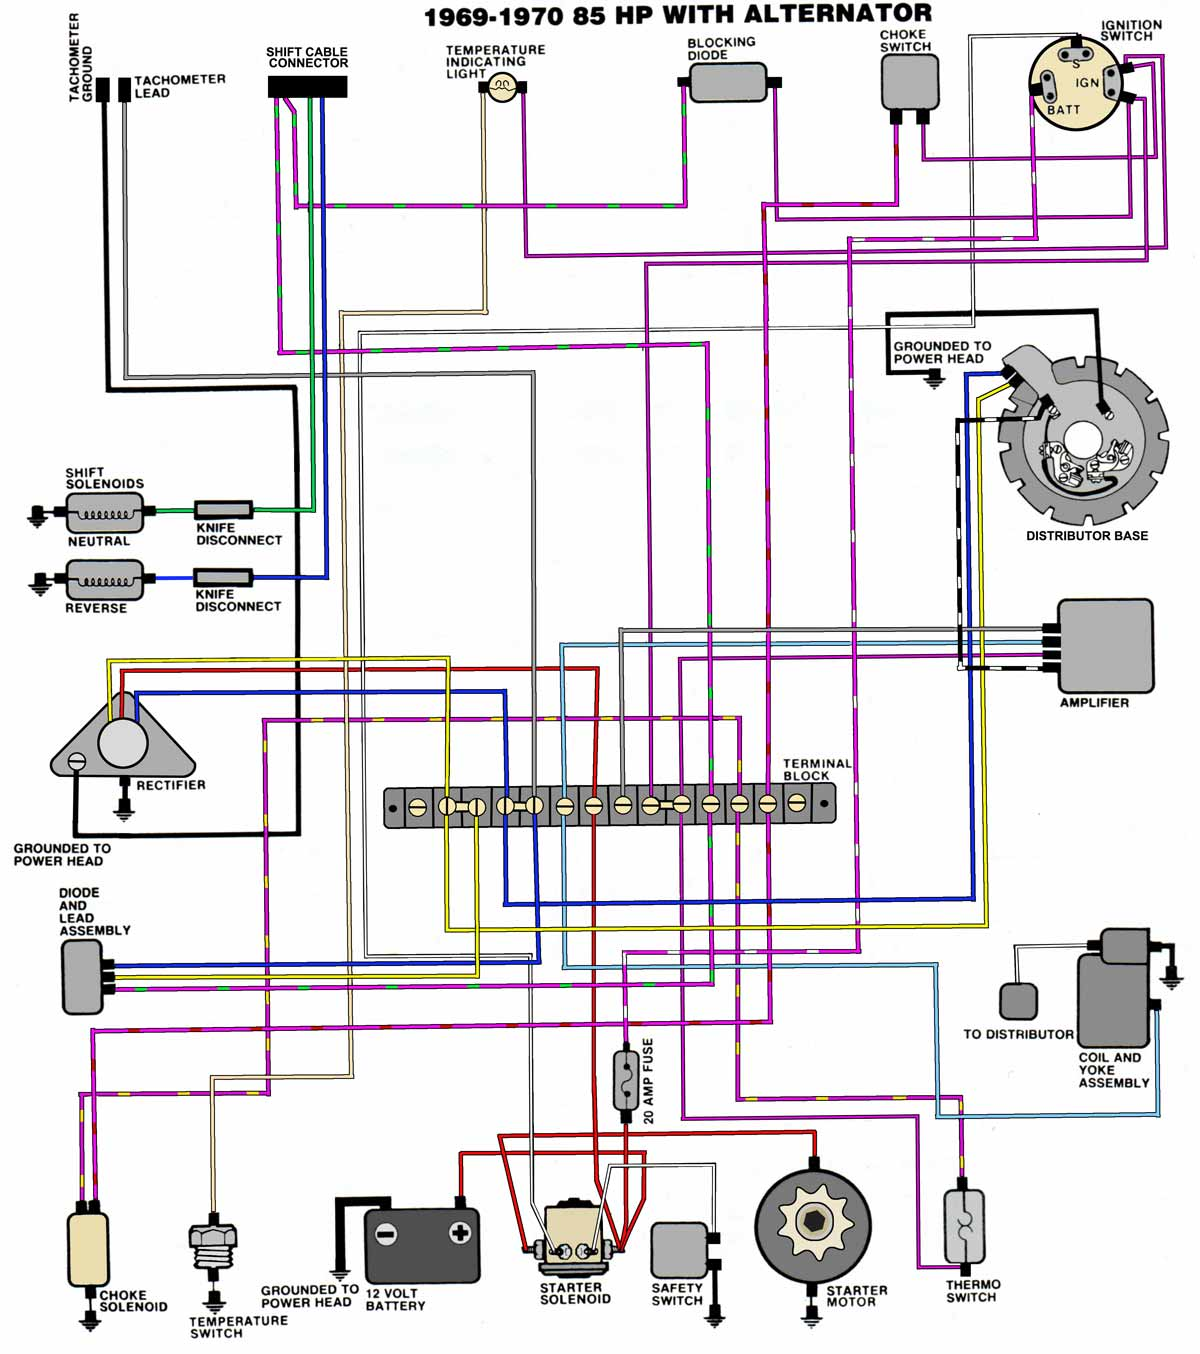 mastertech marine evinrude johnson outboard wiring diagrams Evinrude Ignition Switch Wiring Diagram Mastercraft Wiring-Diagram